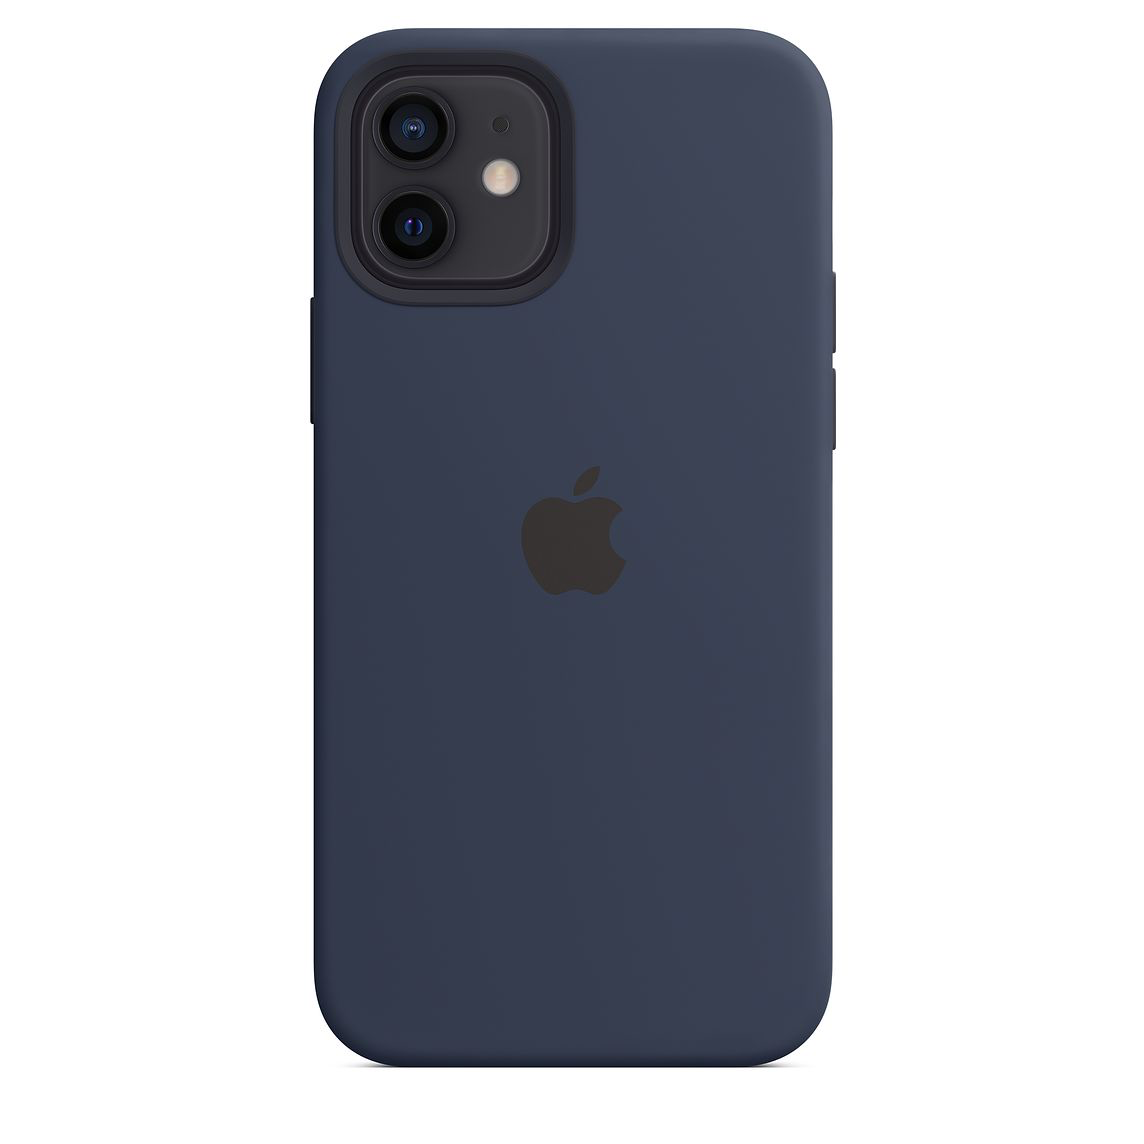 Apple iPhone 12/12 Pro Silicone Case with MagSafe Deep Navy